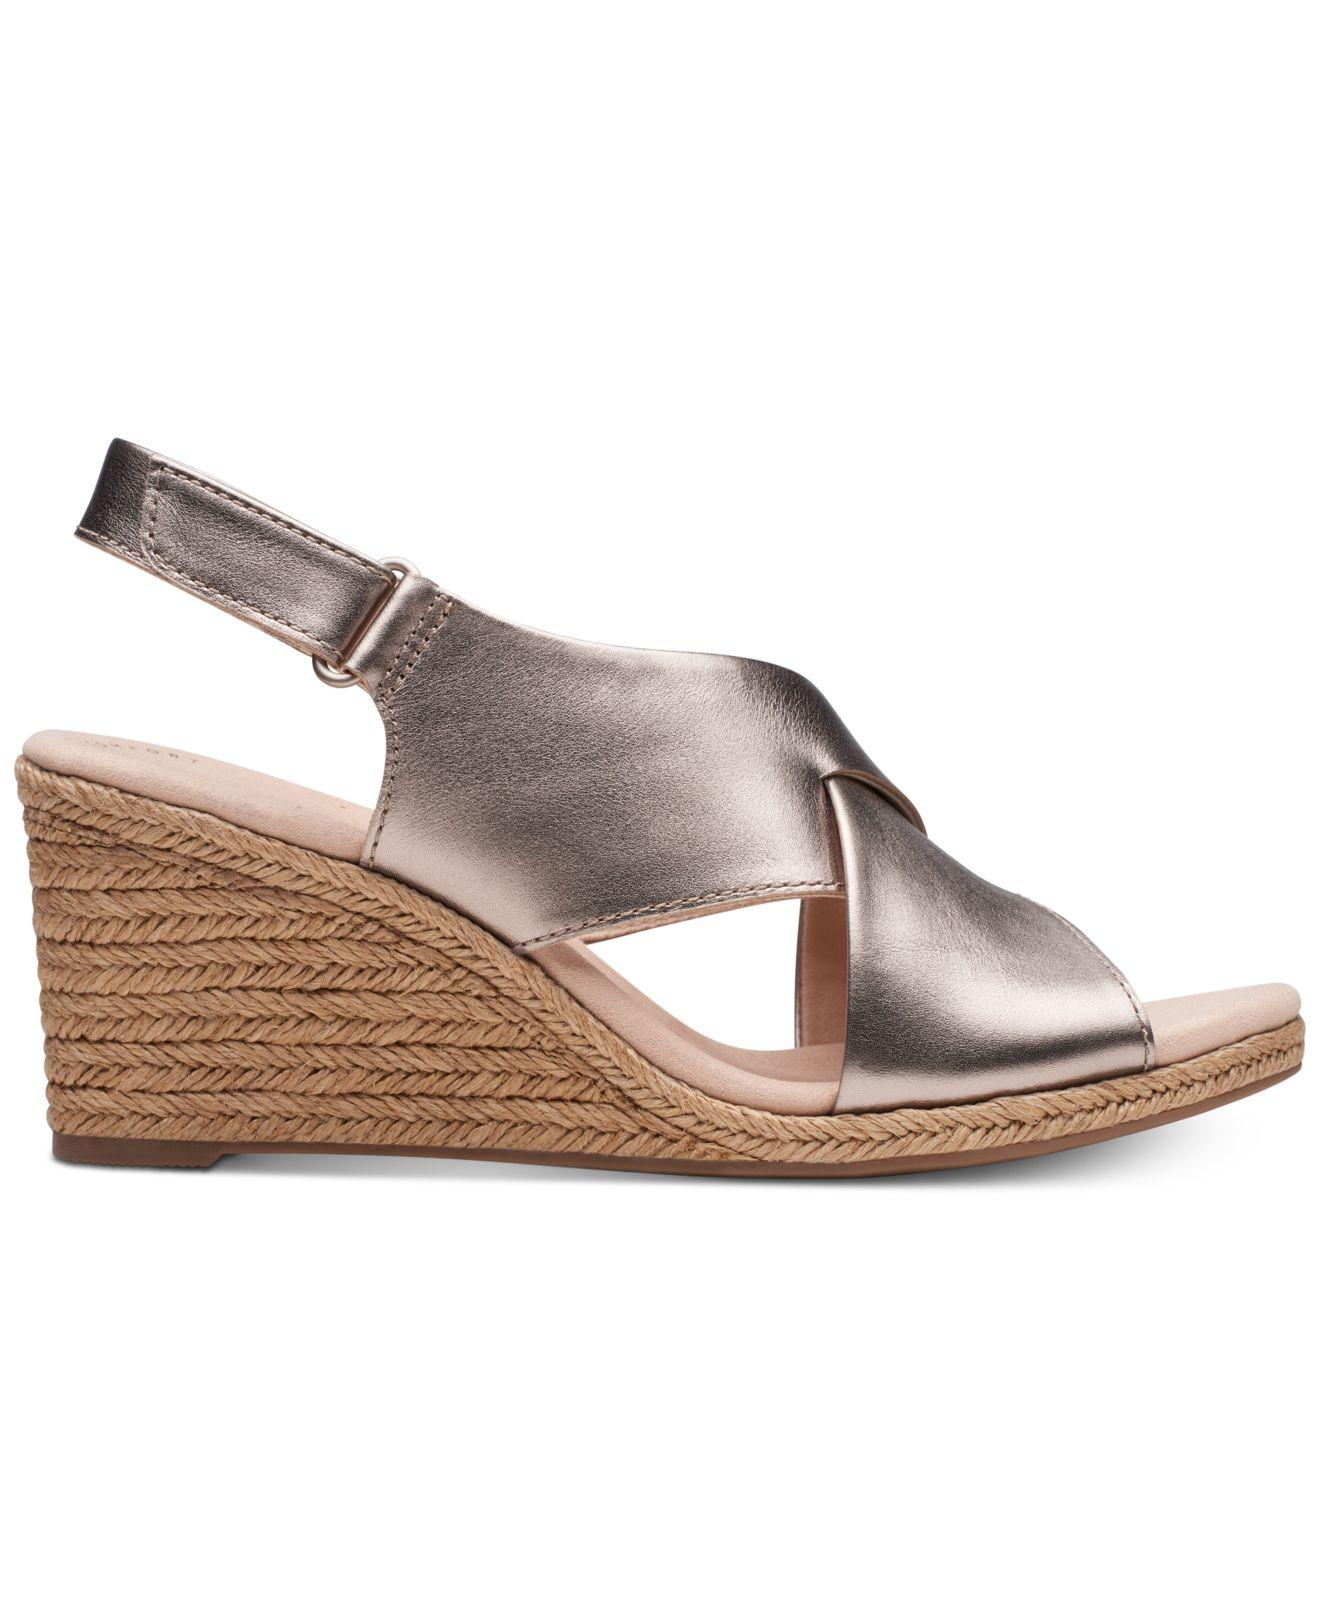 7eaf1e239925 Lyst - Clarks Lafely Alaine Wedge Sandals